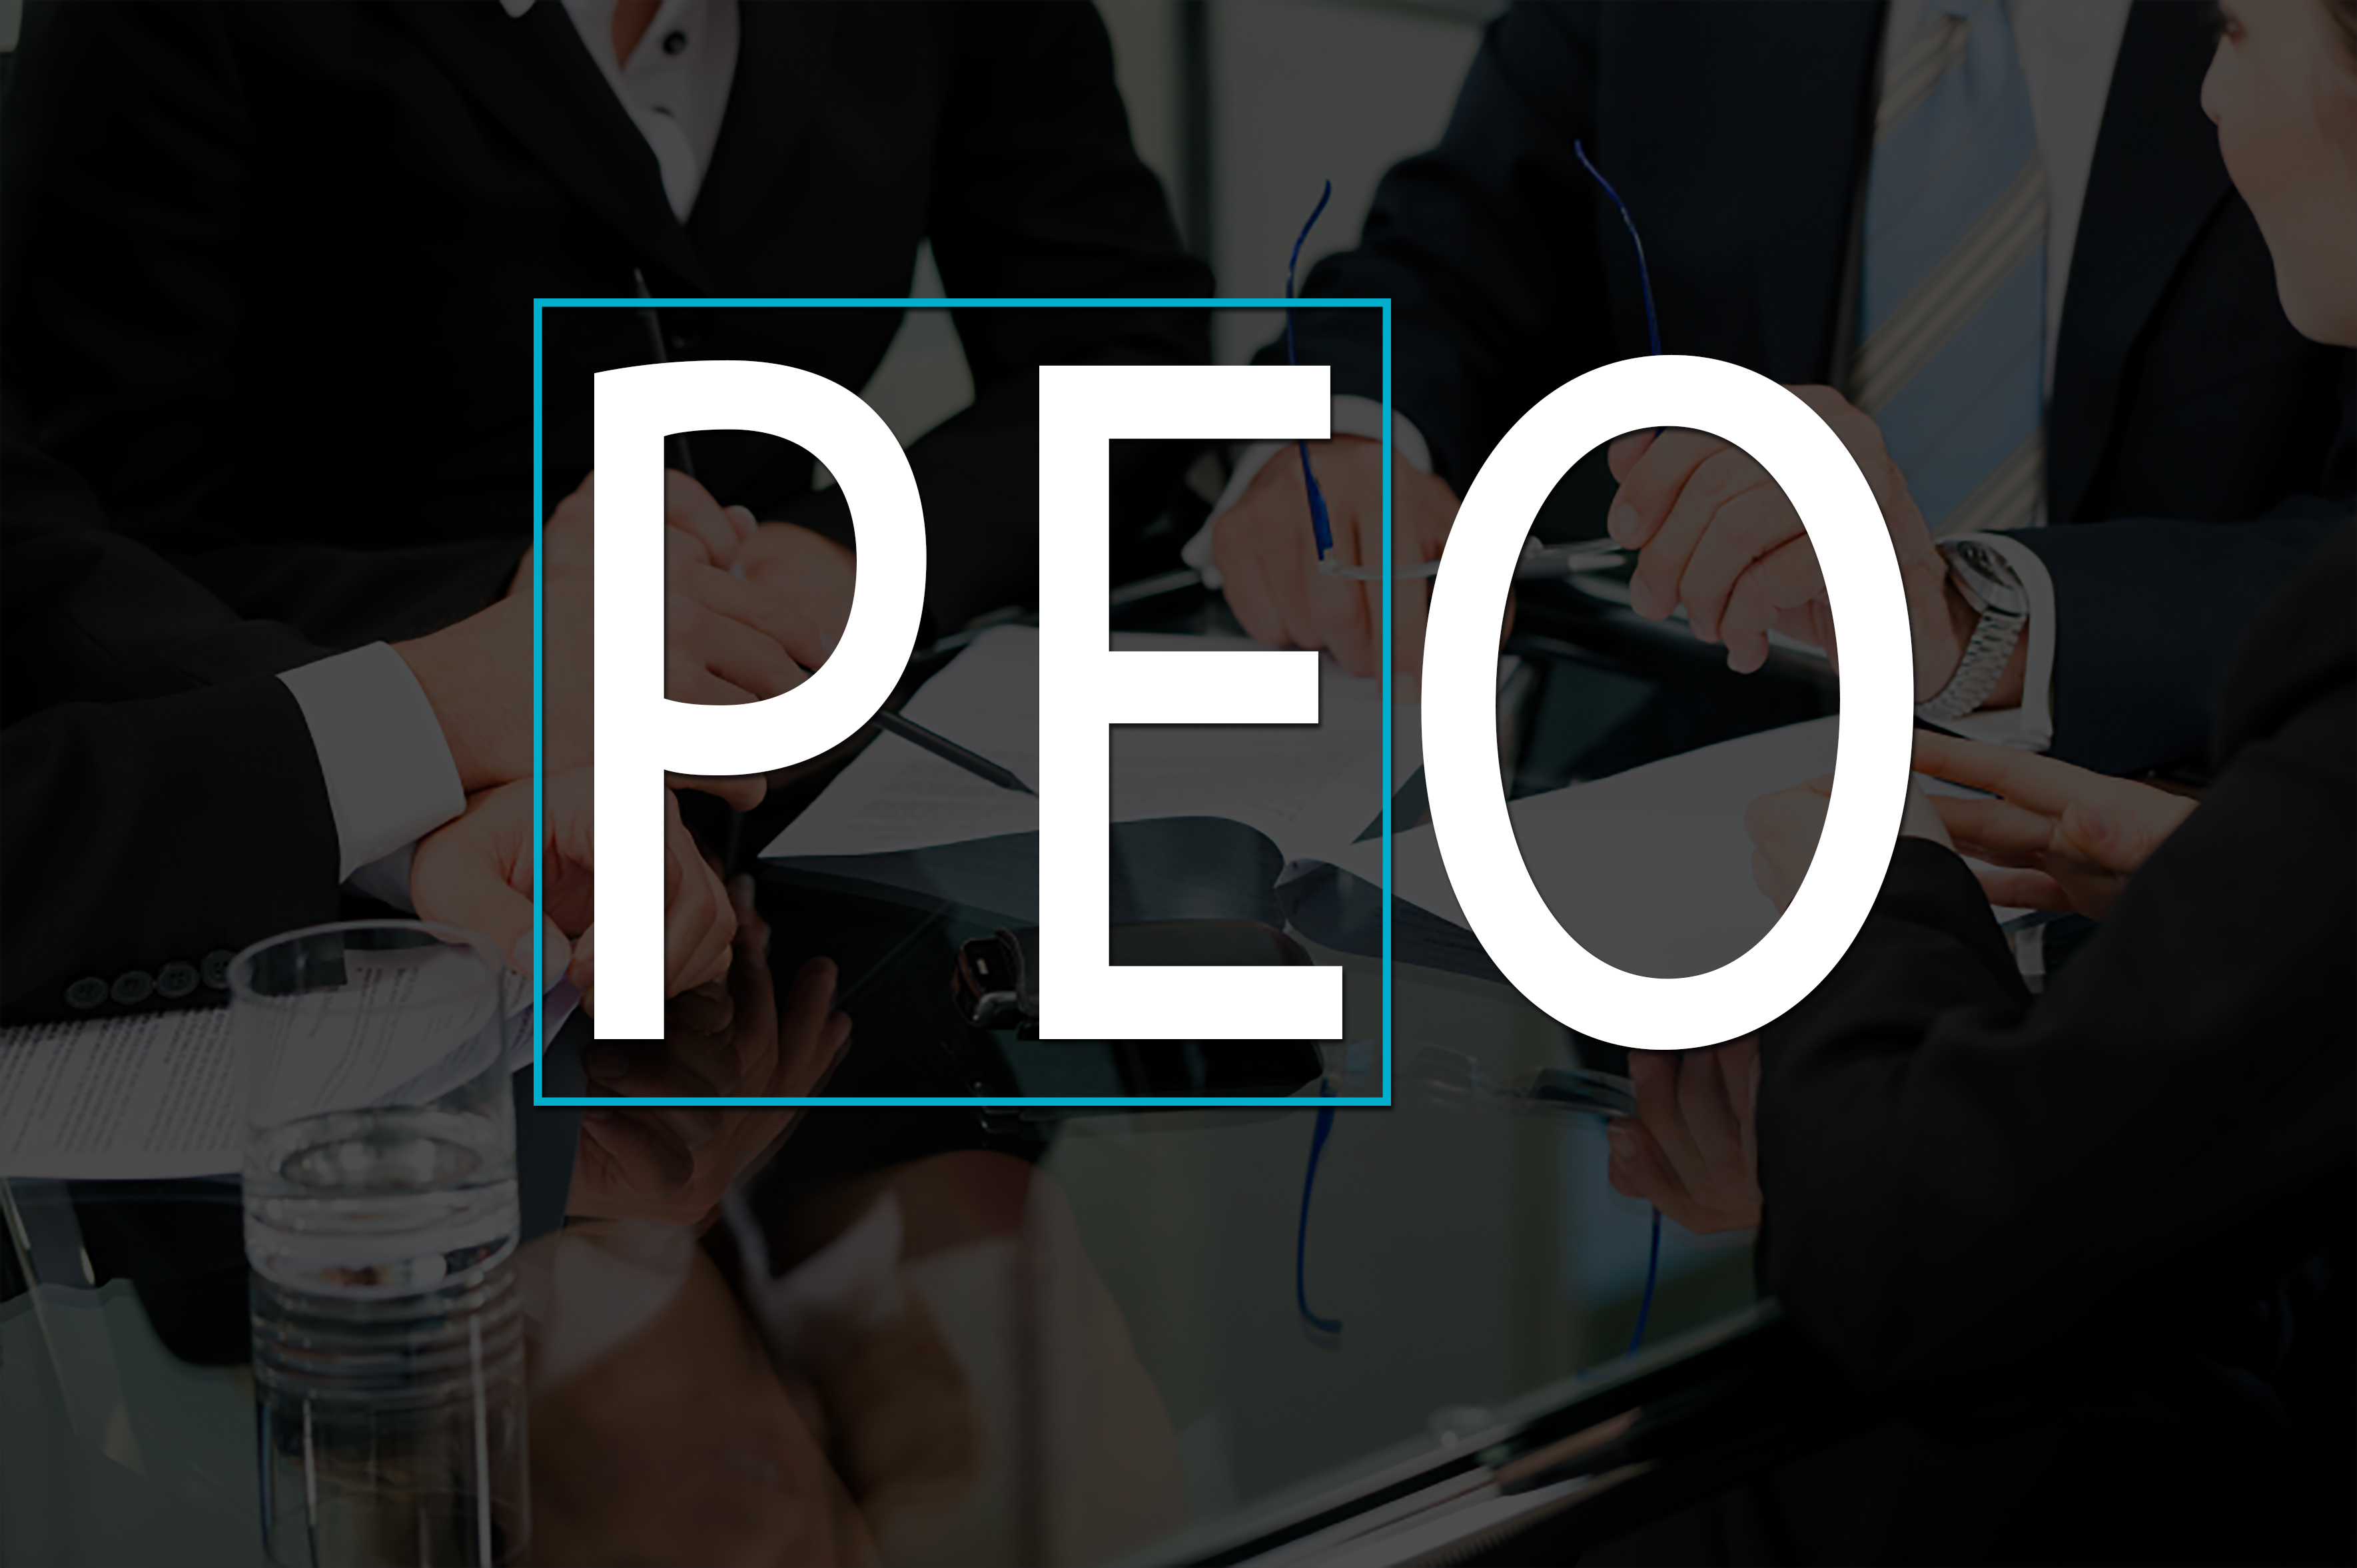 Private equity firms considering a purchase within the PEO industry